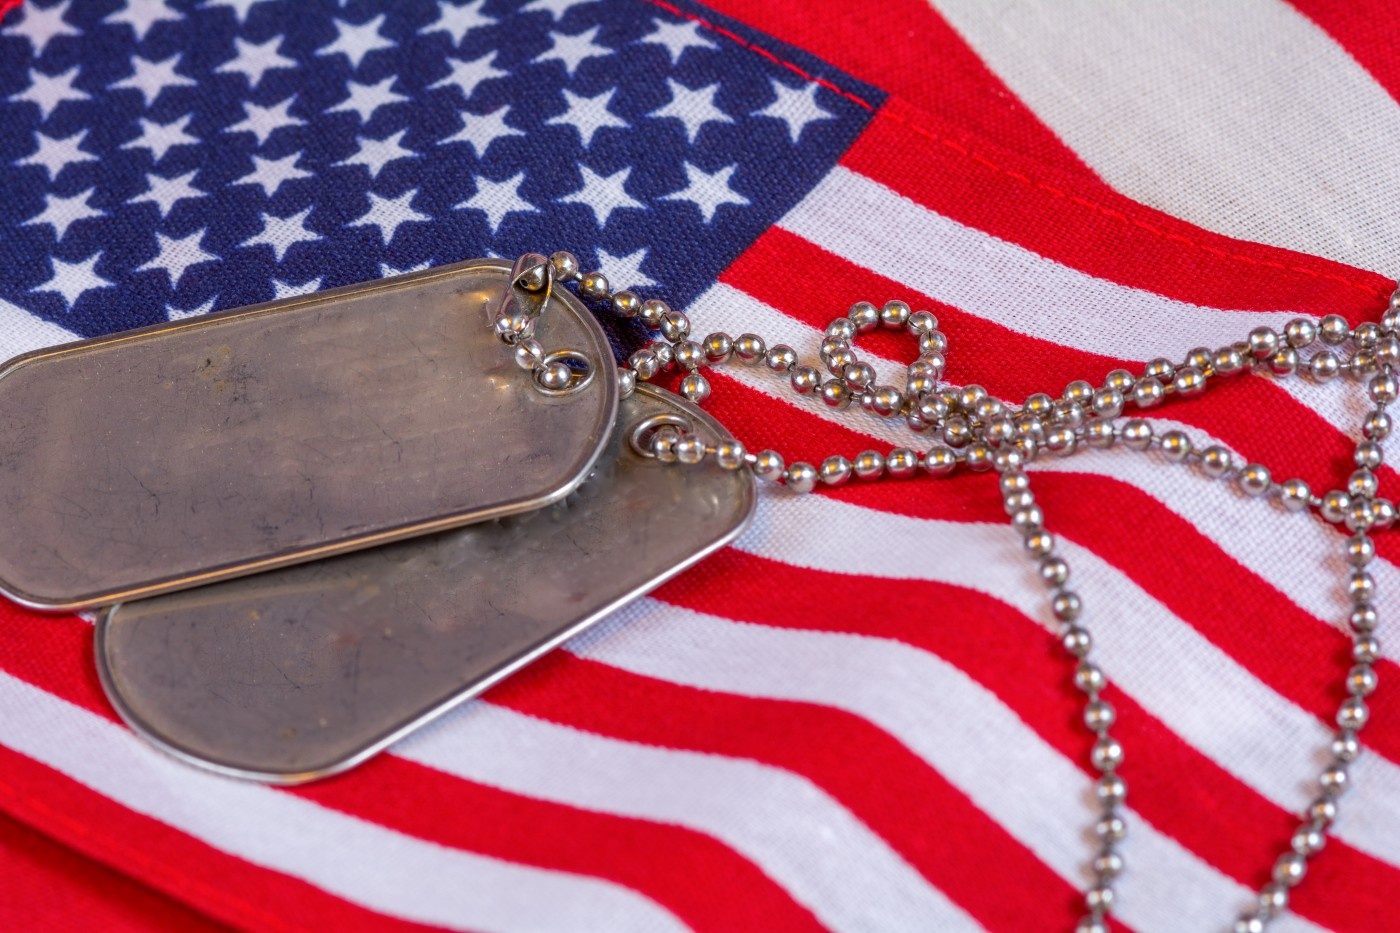 Mitochondrial Damage Shown to Be Associated with Gulf War Illness in Veterans